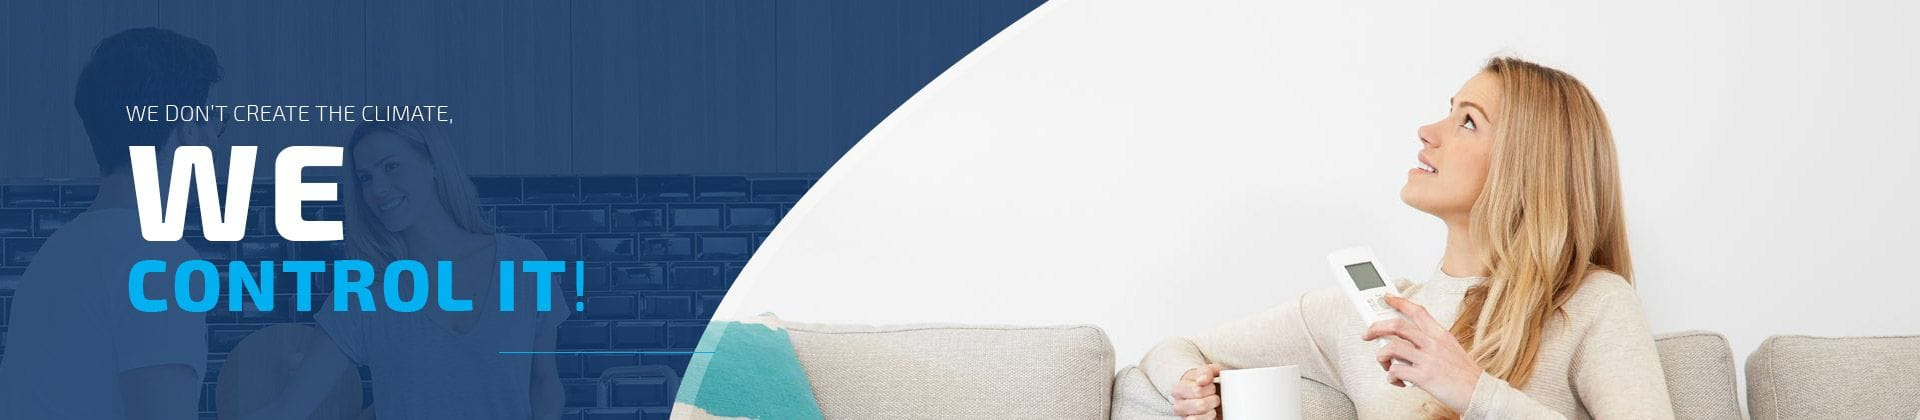 Customised Air Conditioning | air conditioning service and repairs Perth